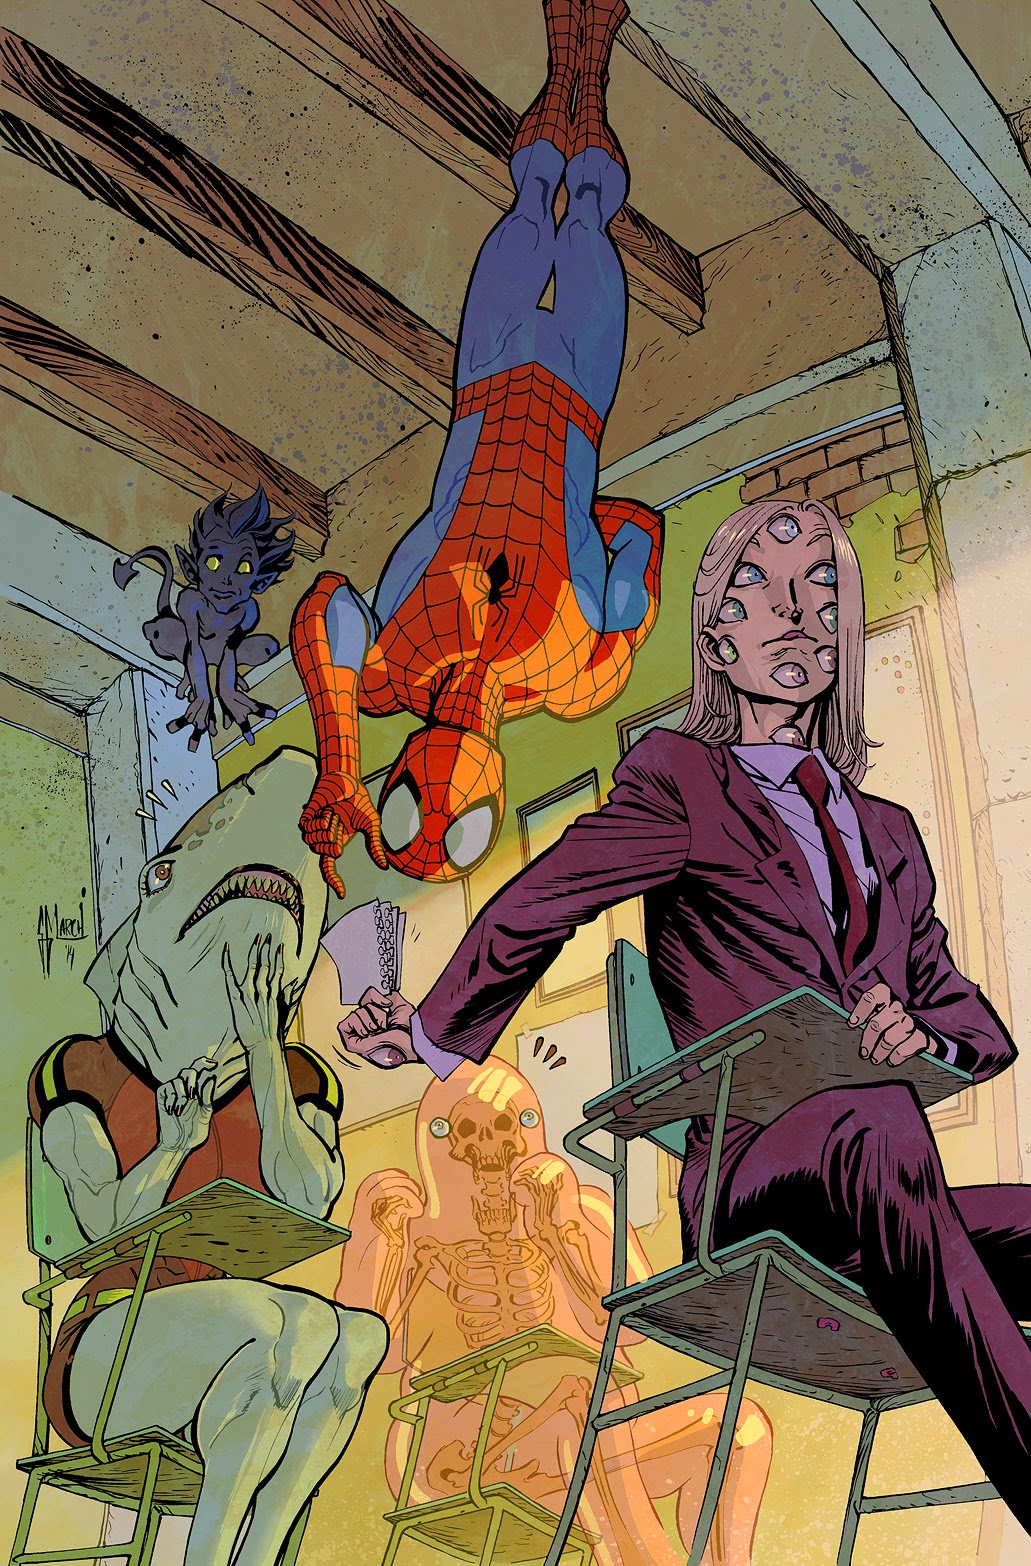 Making of the SPIDERMAN AND THE X-MEN #2 variant cover